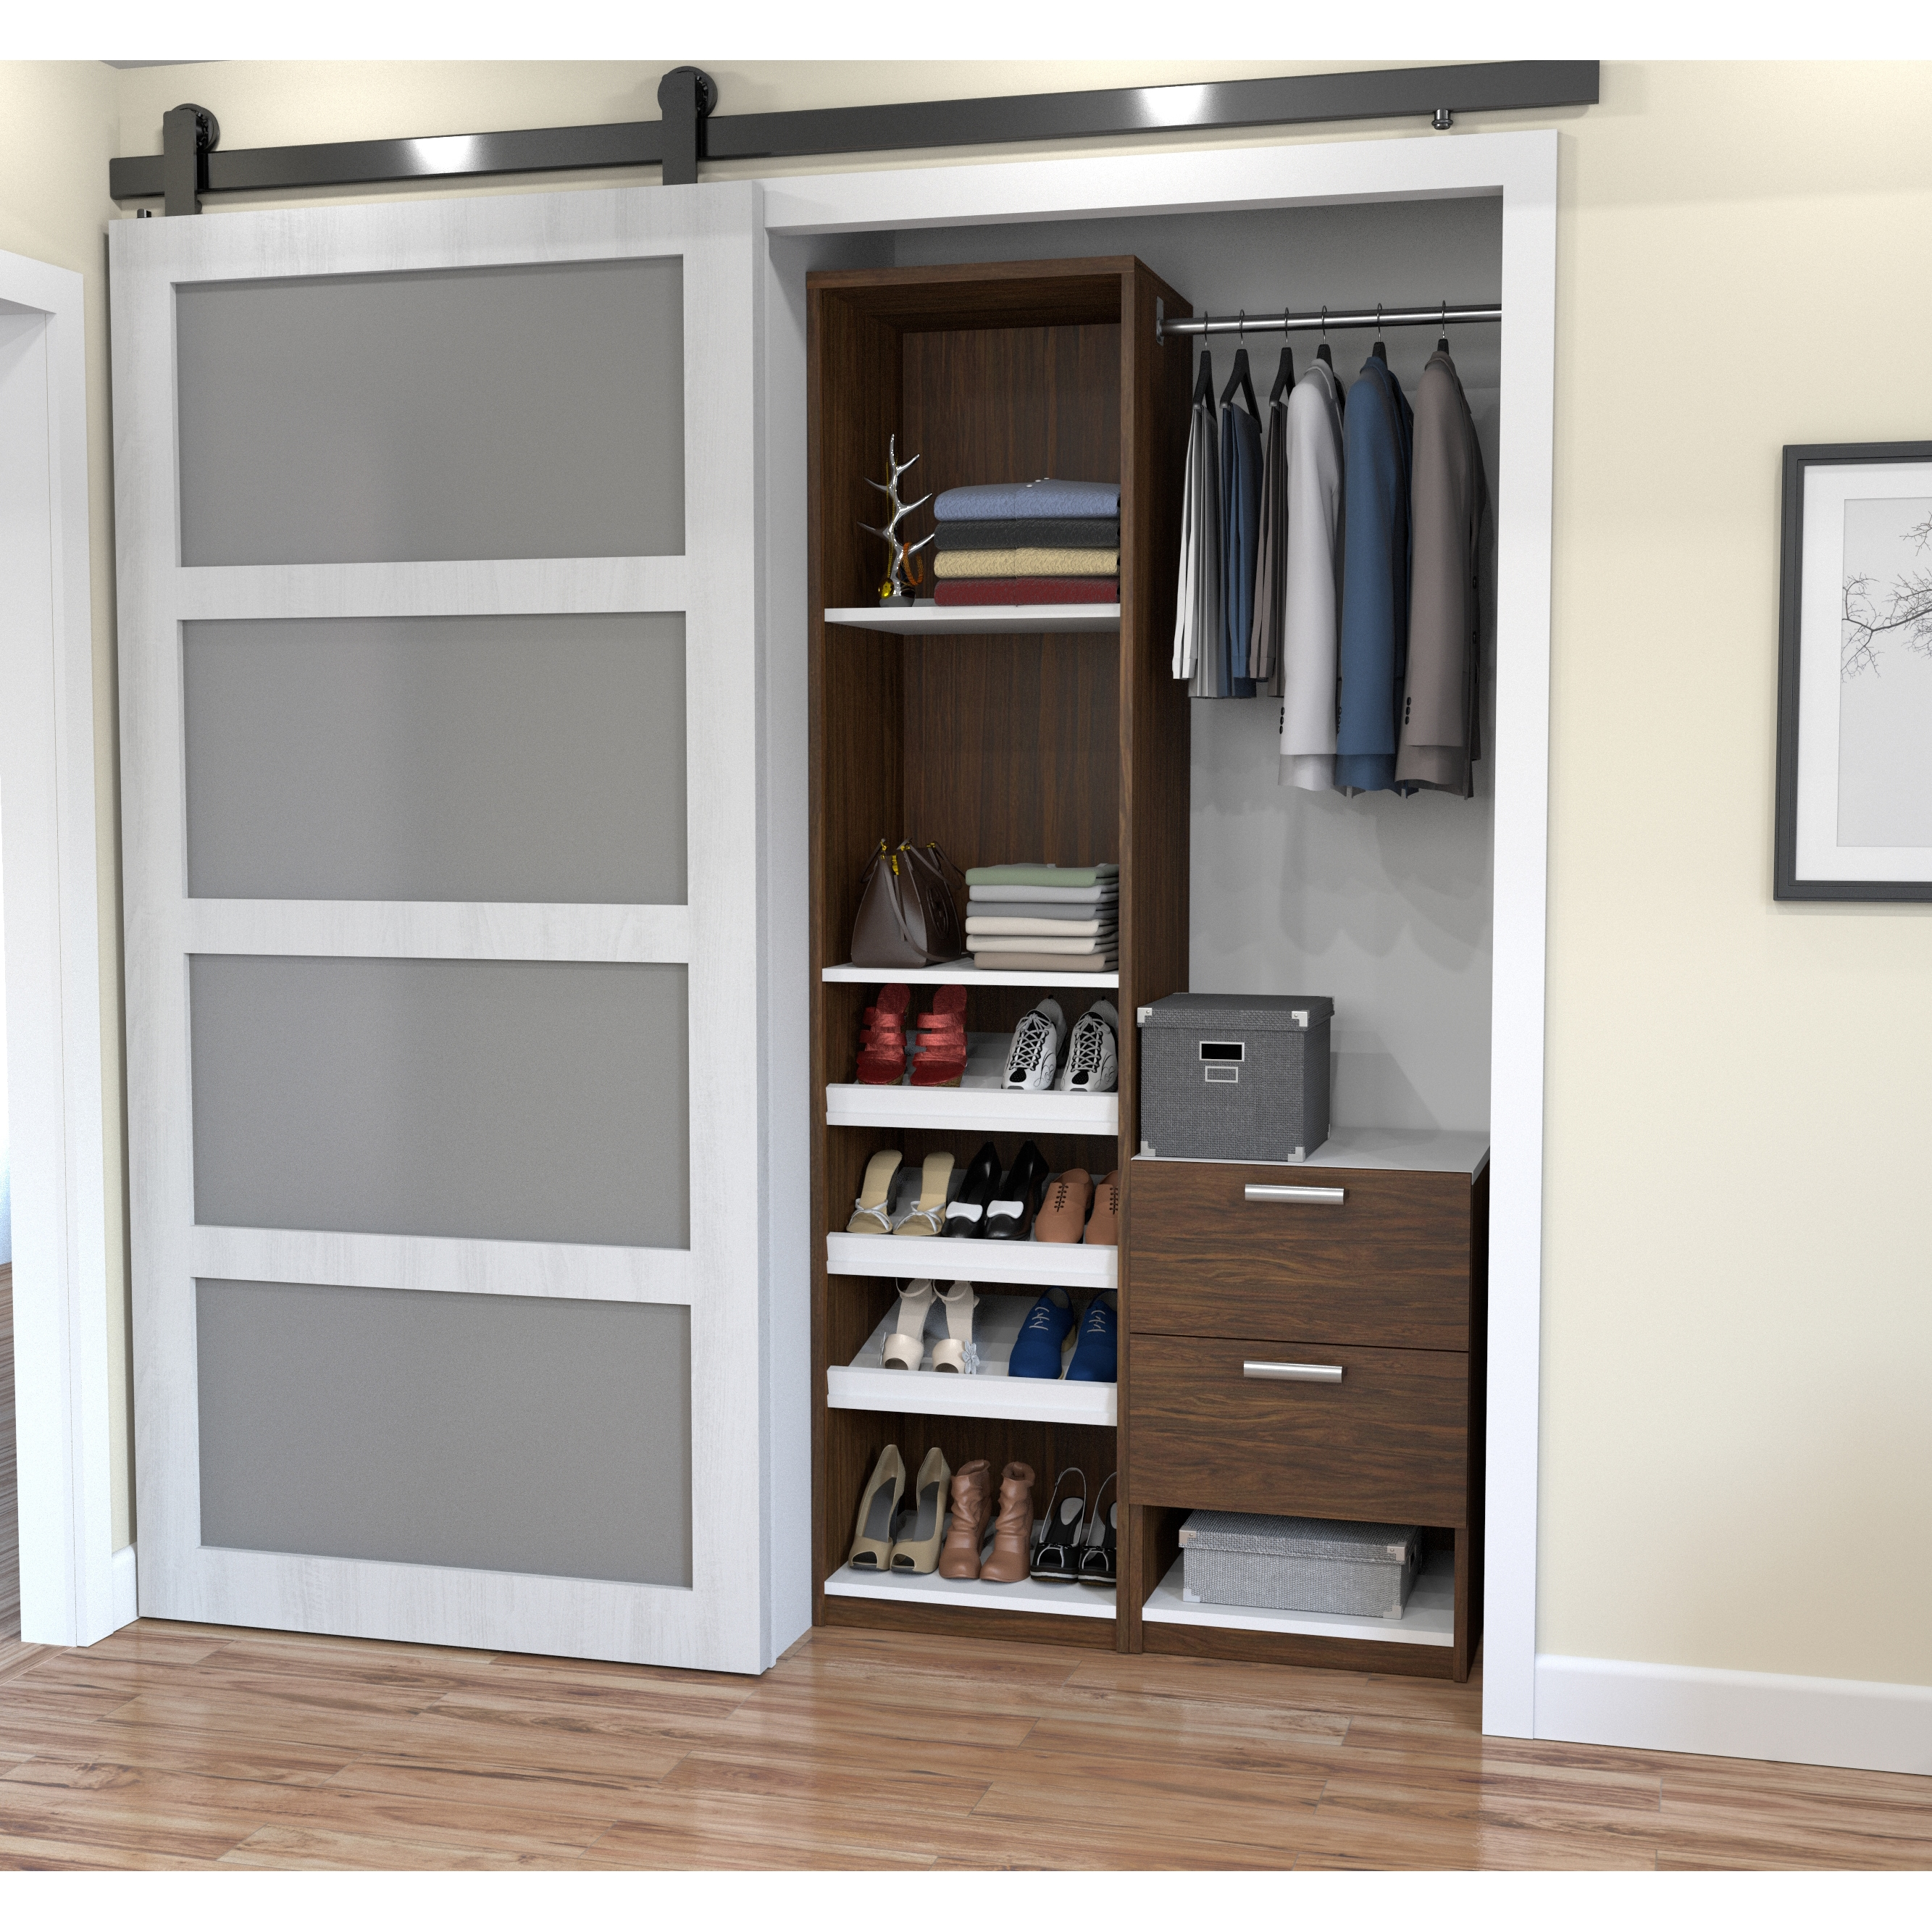 Genial Shop Cielo By Bestar Deluxe 39 Inch Reach In Closet   Free Shipping Today    Overstock.com   14173245